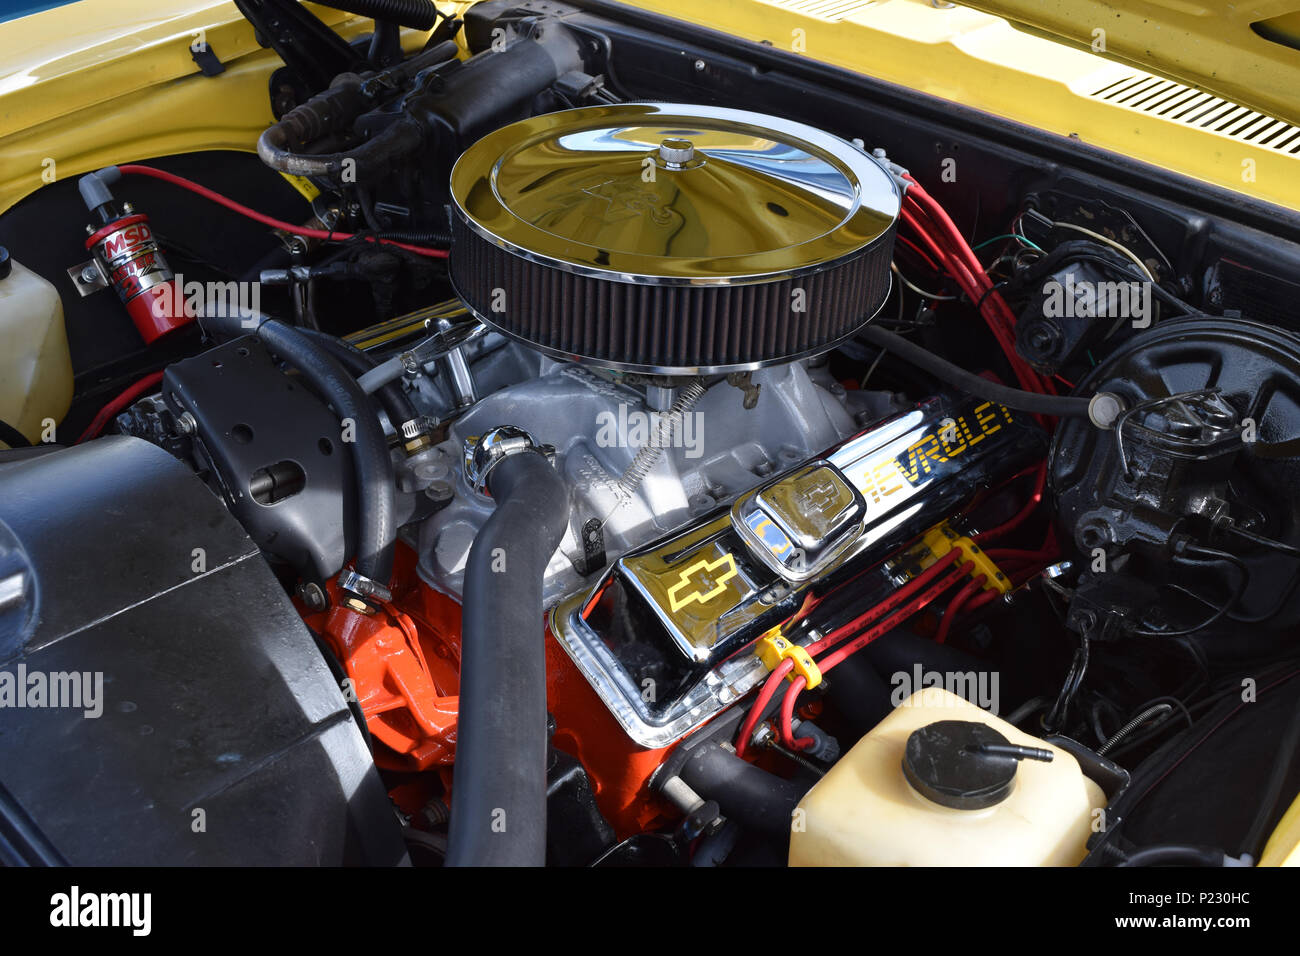 Chevrolet 350 Stock Photos & Chevrolet 350 Stock Images - Alamy